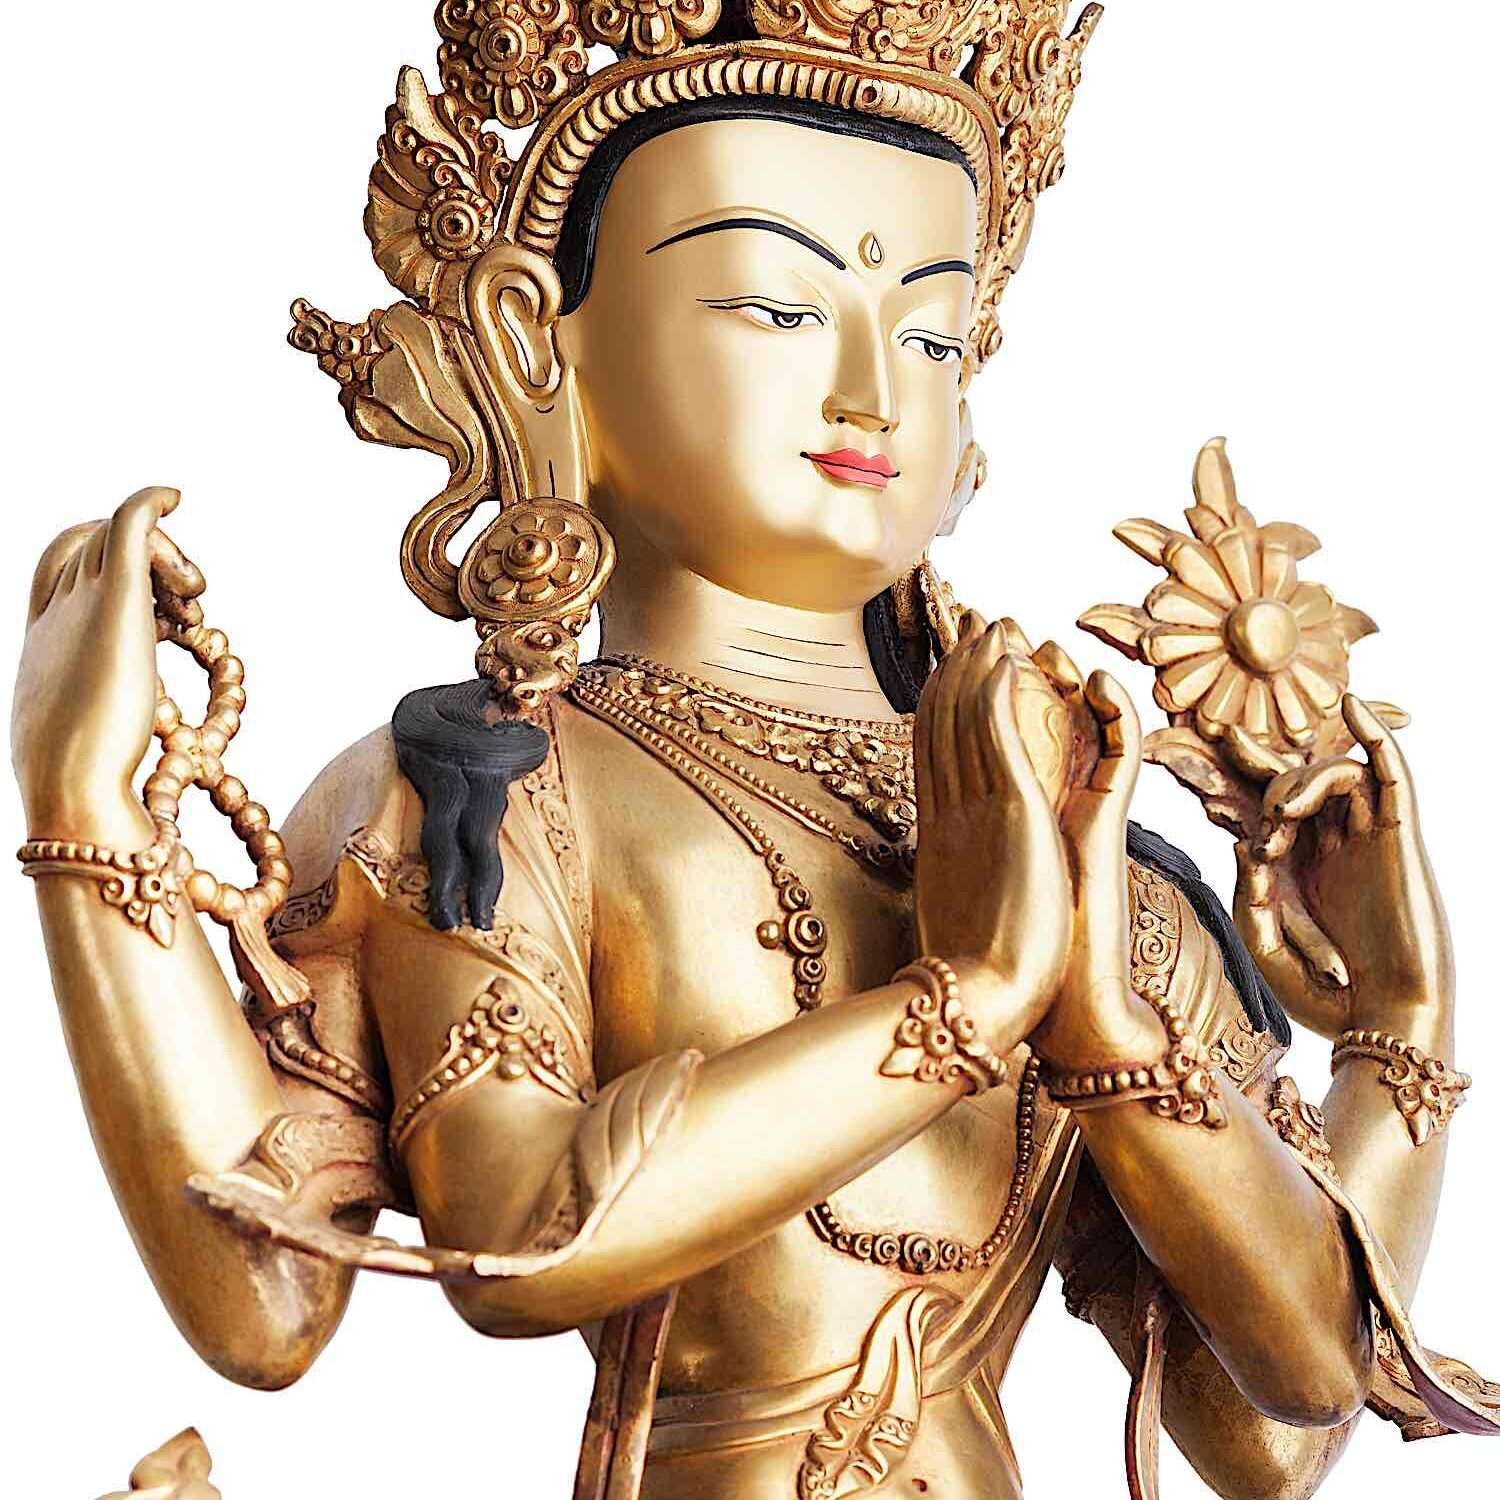 Four-Armed Chenrezig gilded statue.